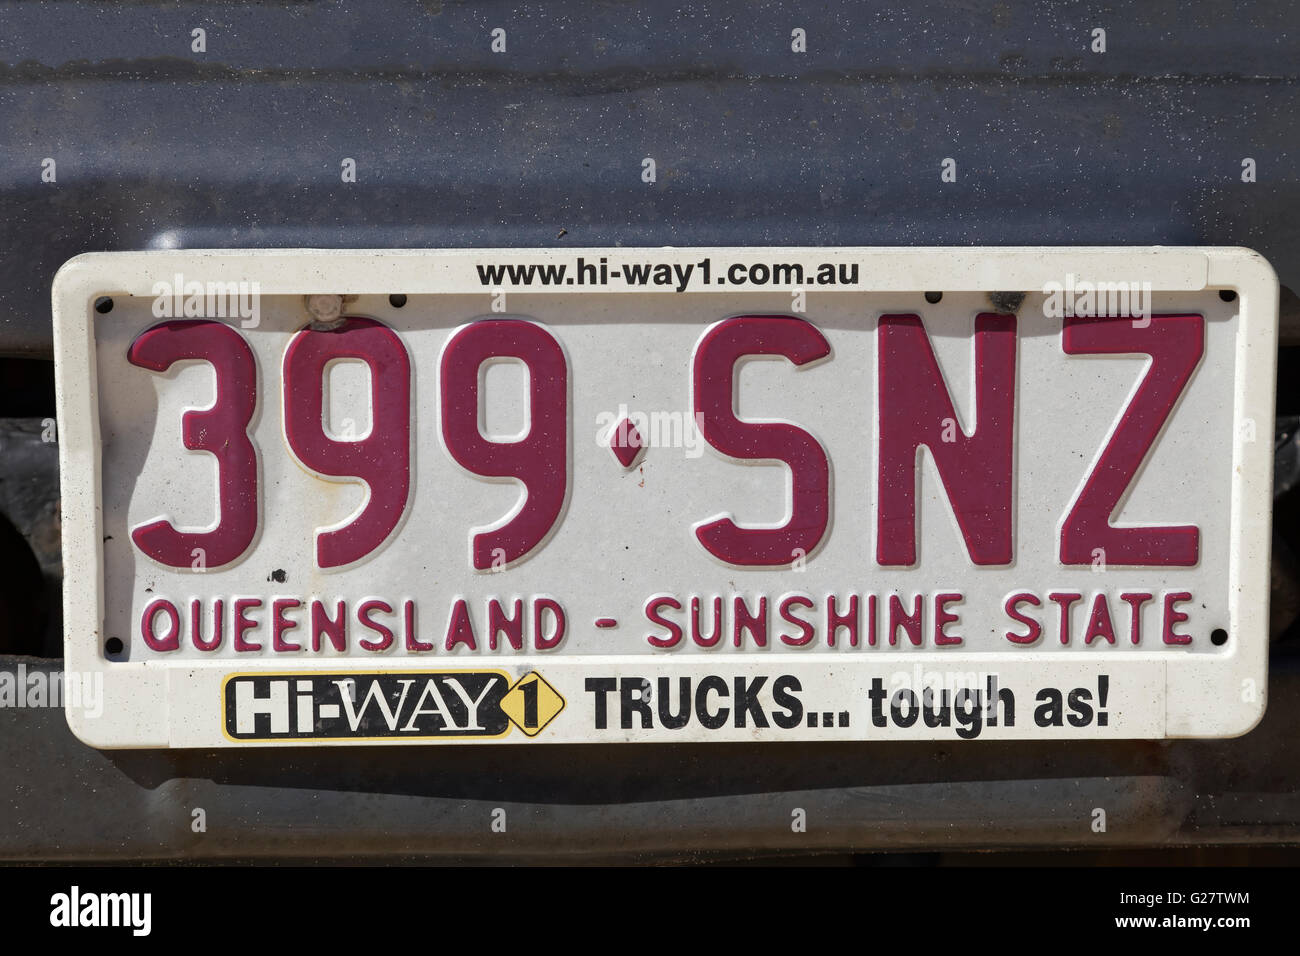 License plate of Queensland, Sunshine state, Australia - Stock Image